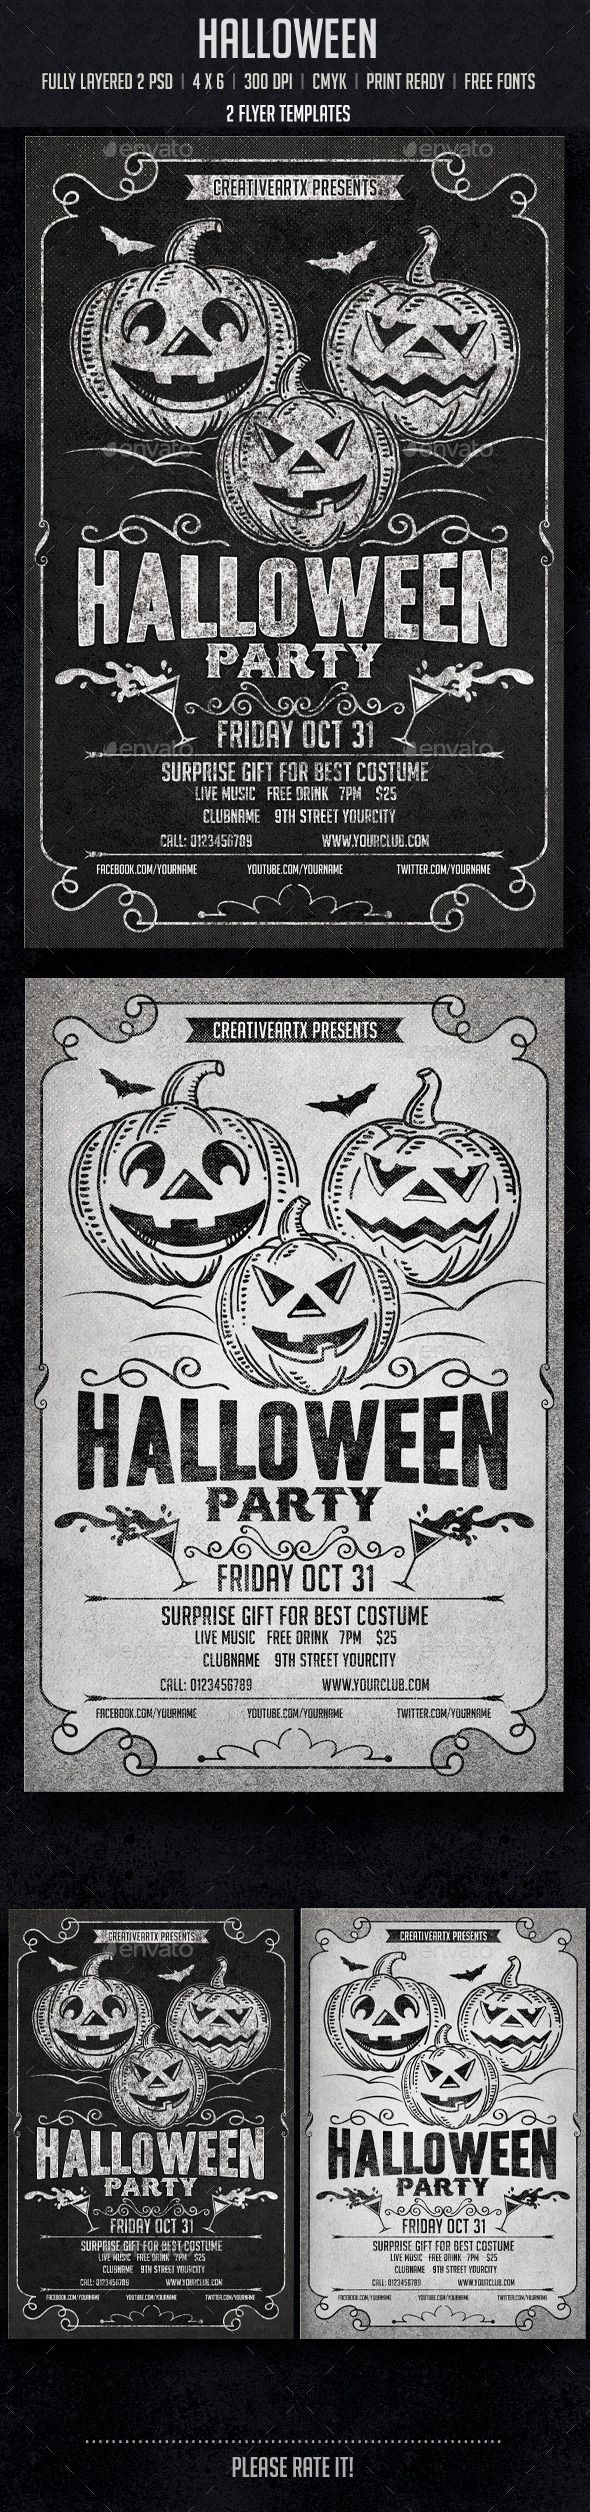 Halloween Flyer Template PSD | Buy and Download: http://graphicriver.net/item/halloween/8838178?WT.ac=category_thumb&WT.z_author=creativeartx&ref=ksioks